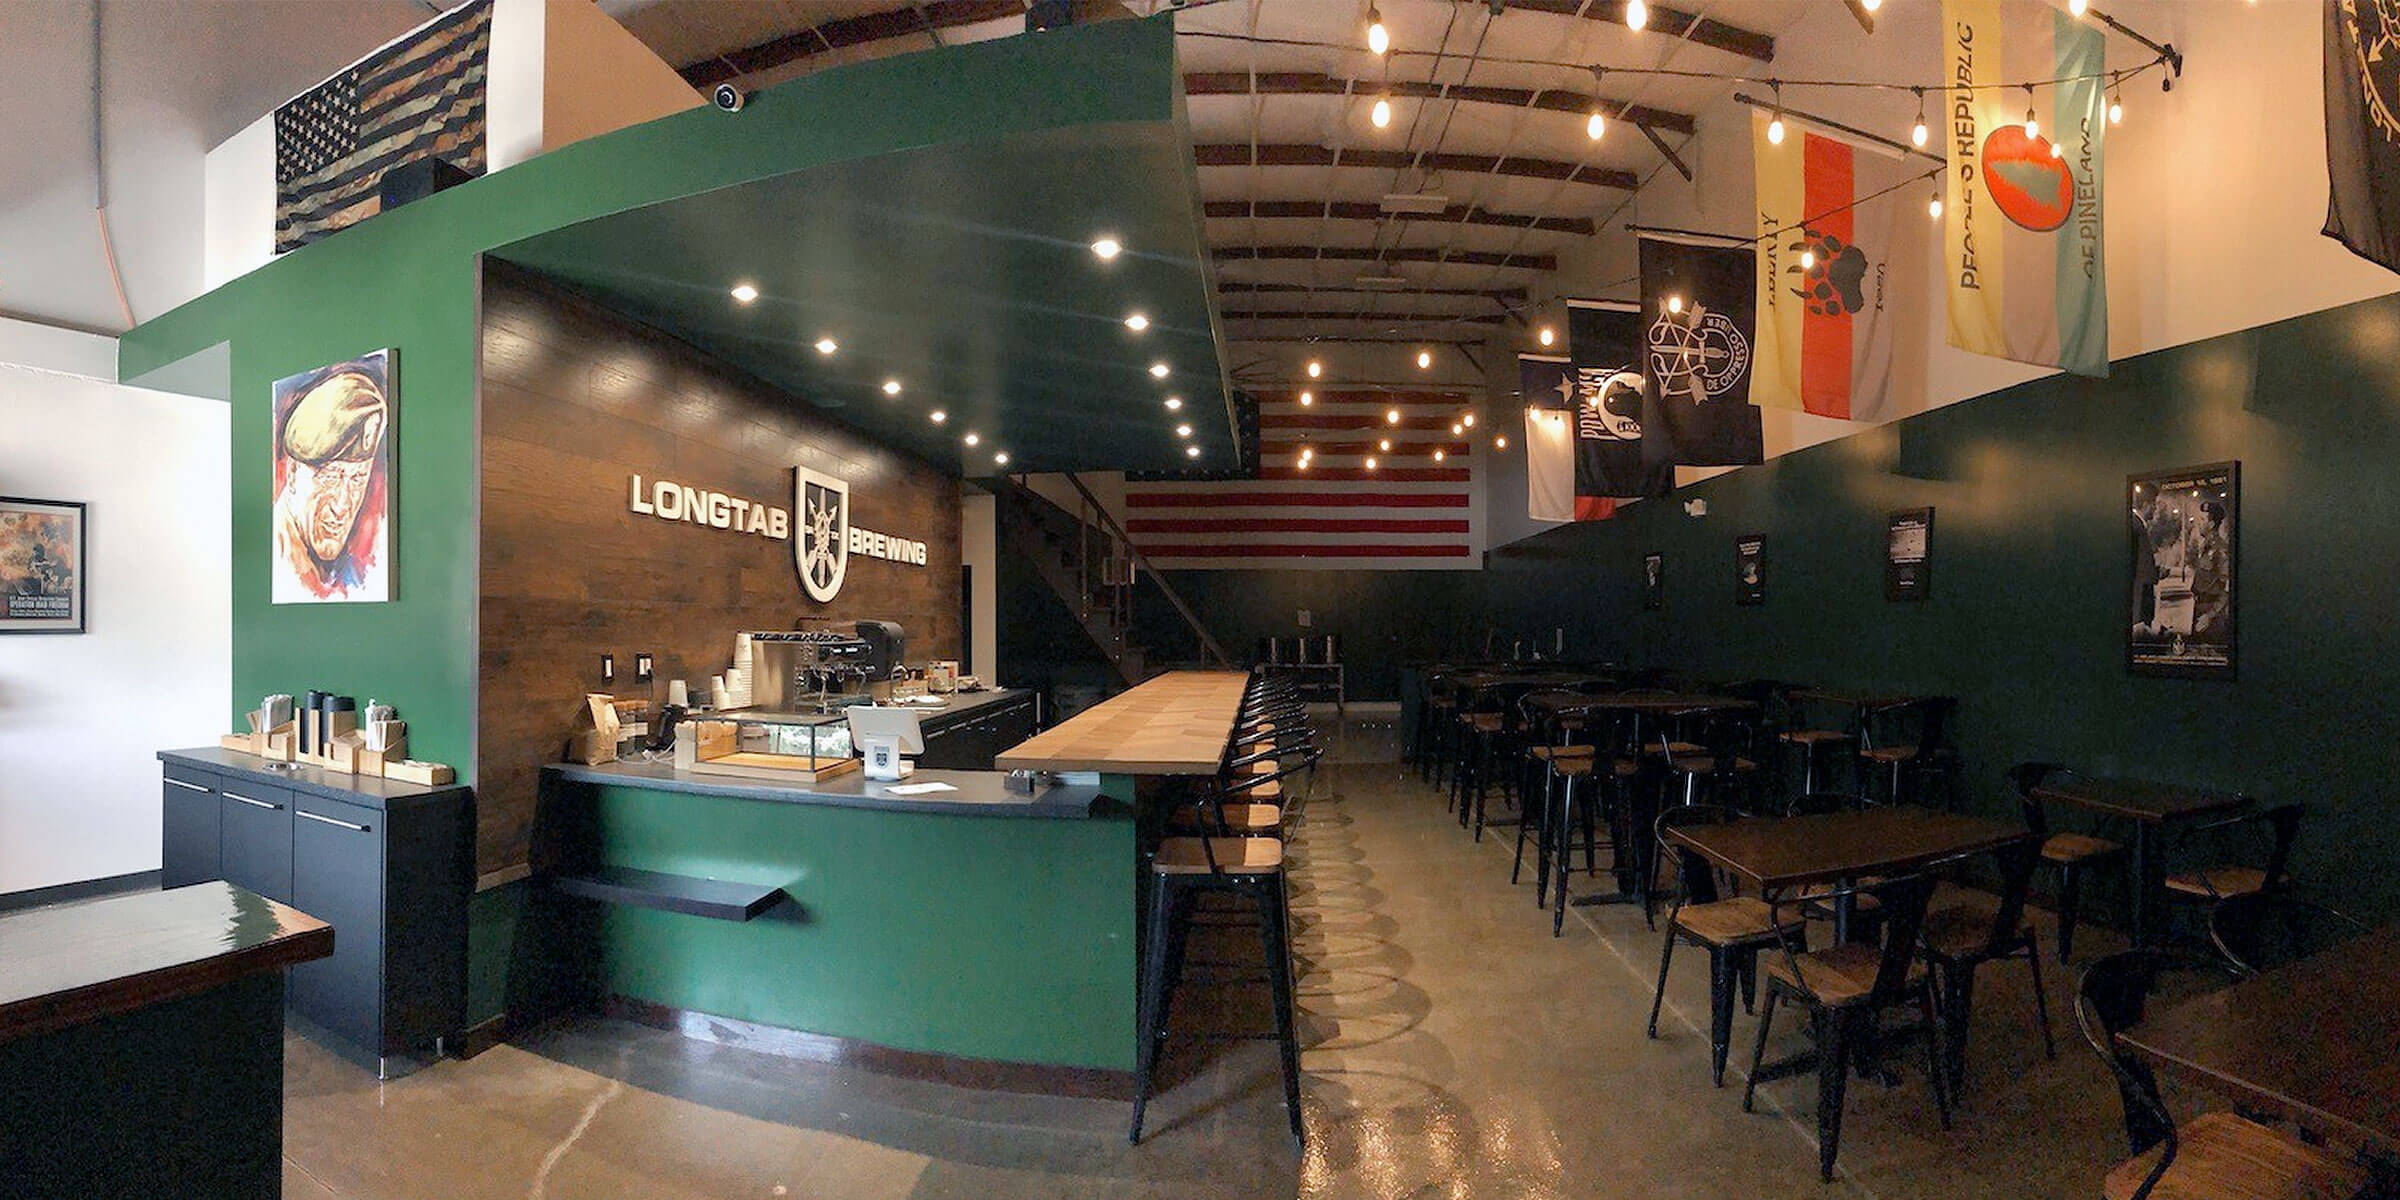 Inside the taproom at Longtab Brewing Company in San Antonio, Texas